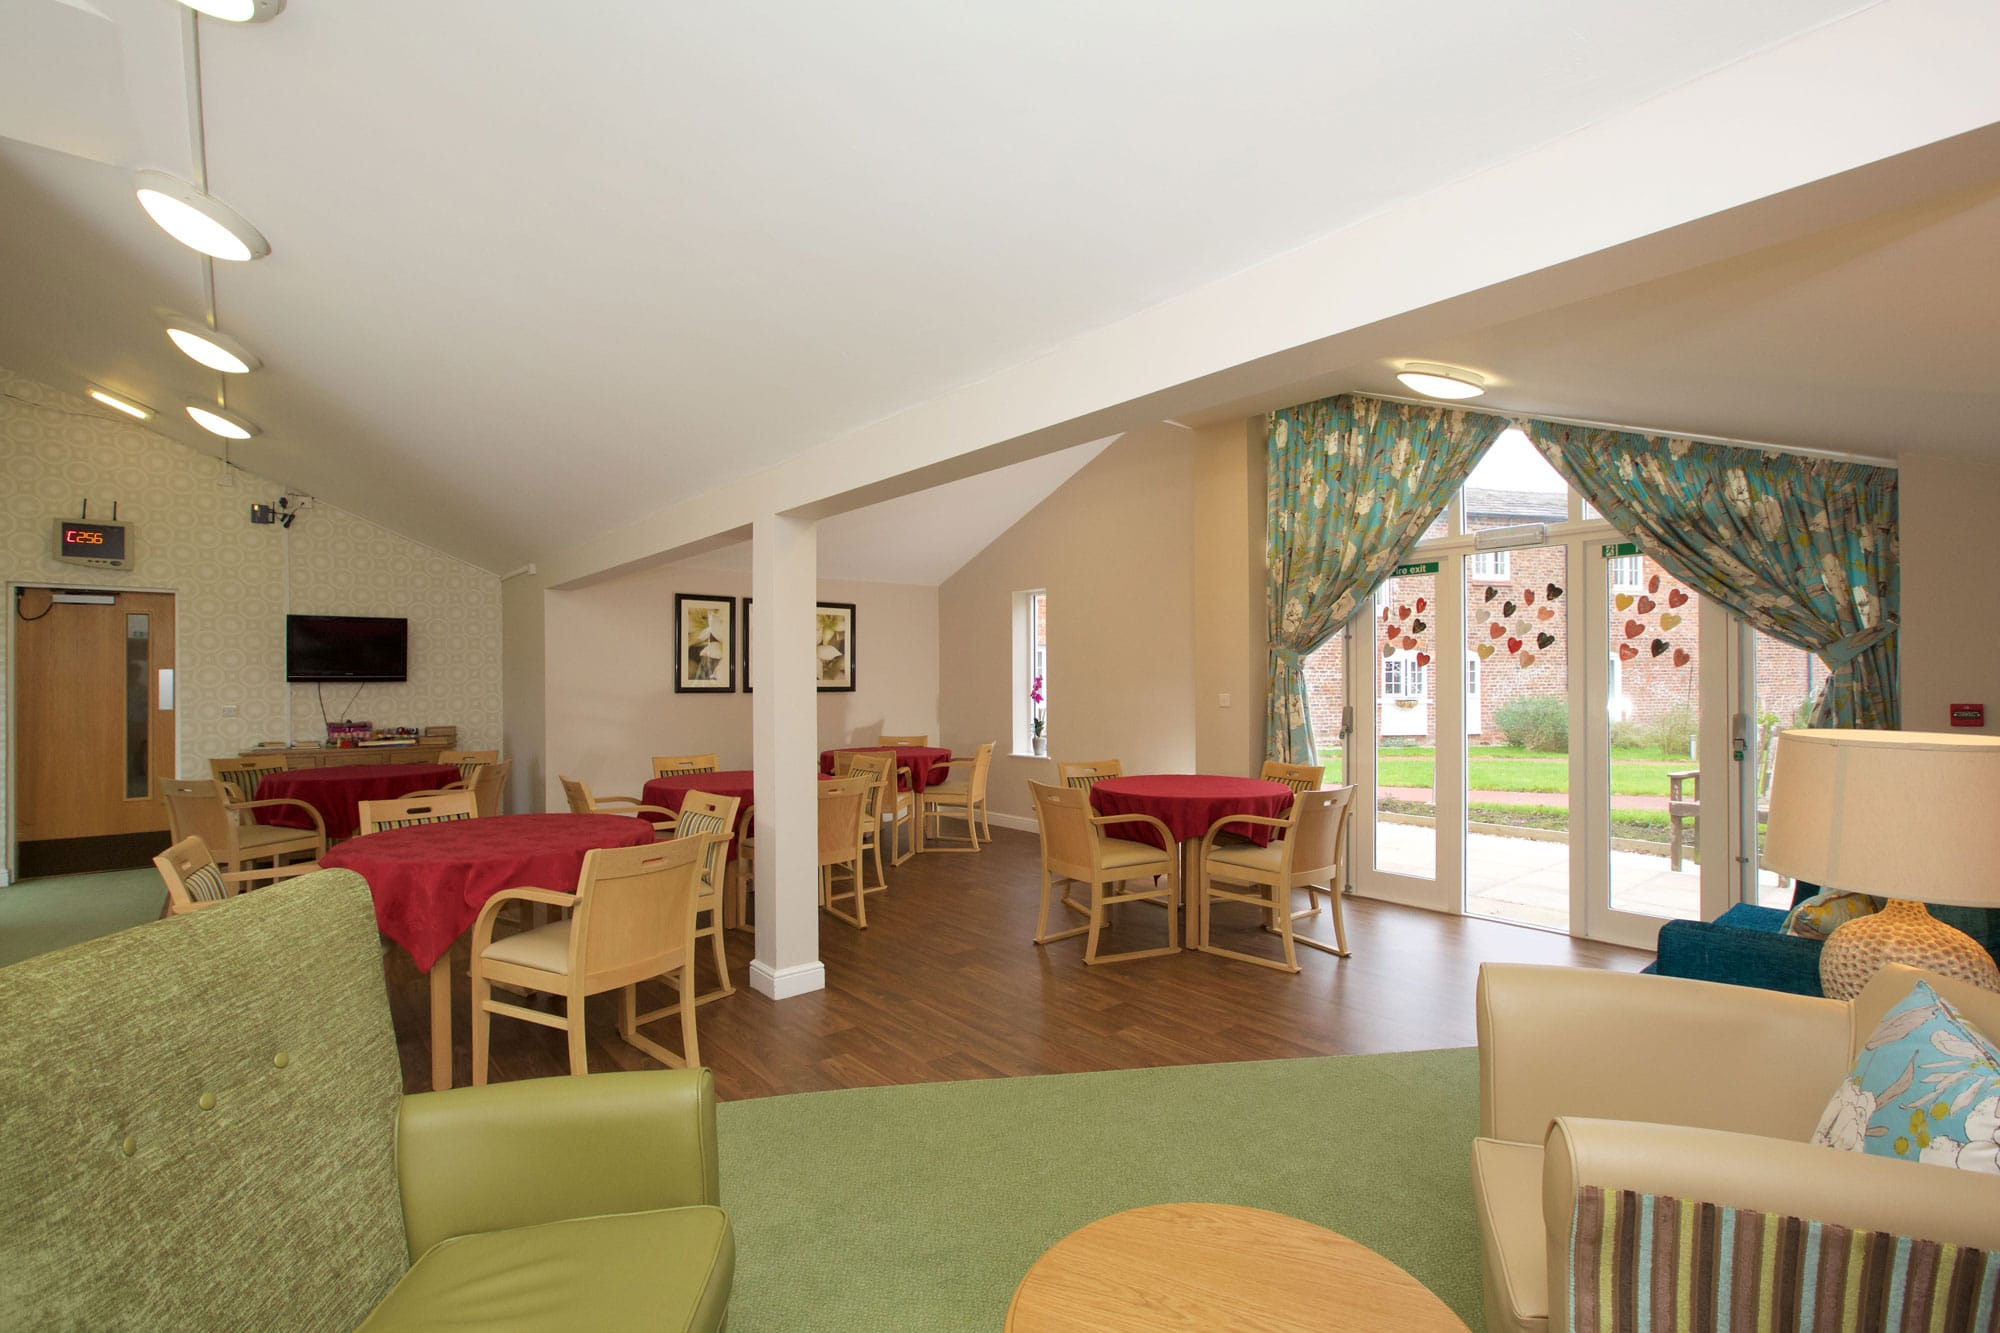 100 nursing home design uk the laurels nursing home for Home decor uk ltd